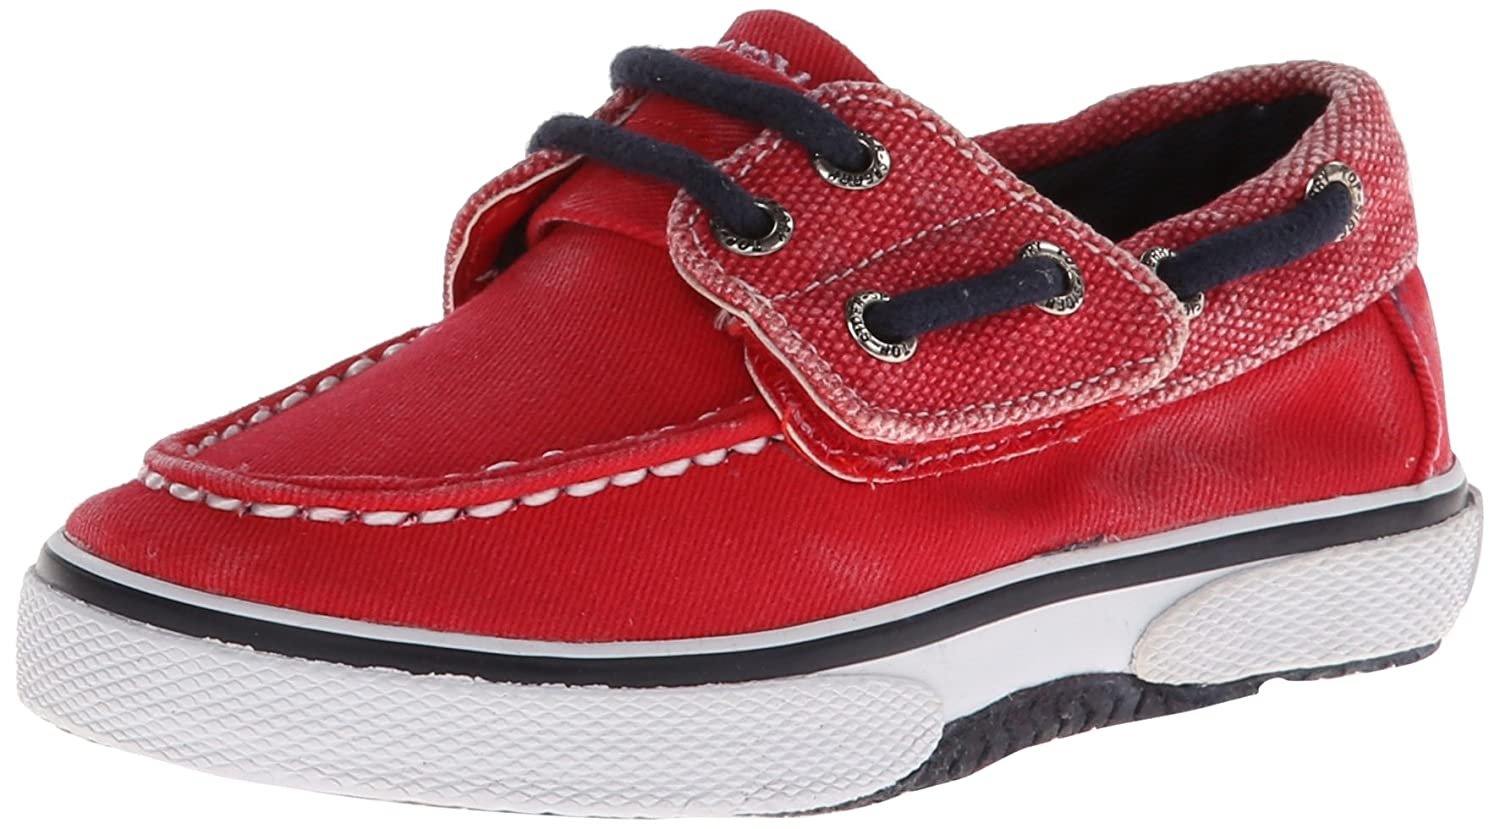 Toddler//Little Kid HALYARD JR Sperry Top-Sider Halyard JR Boat Shoe K